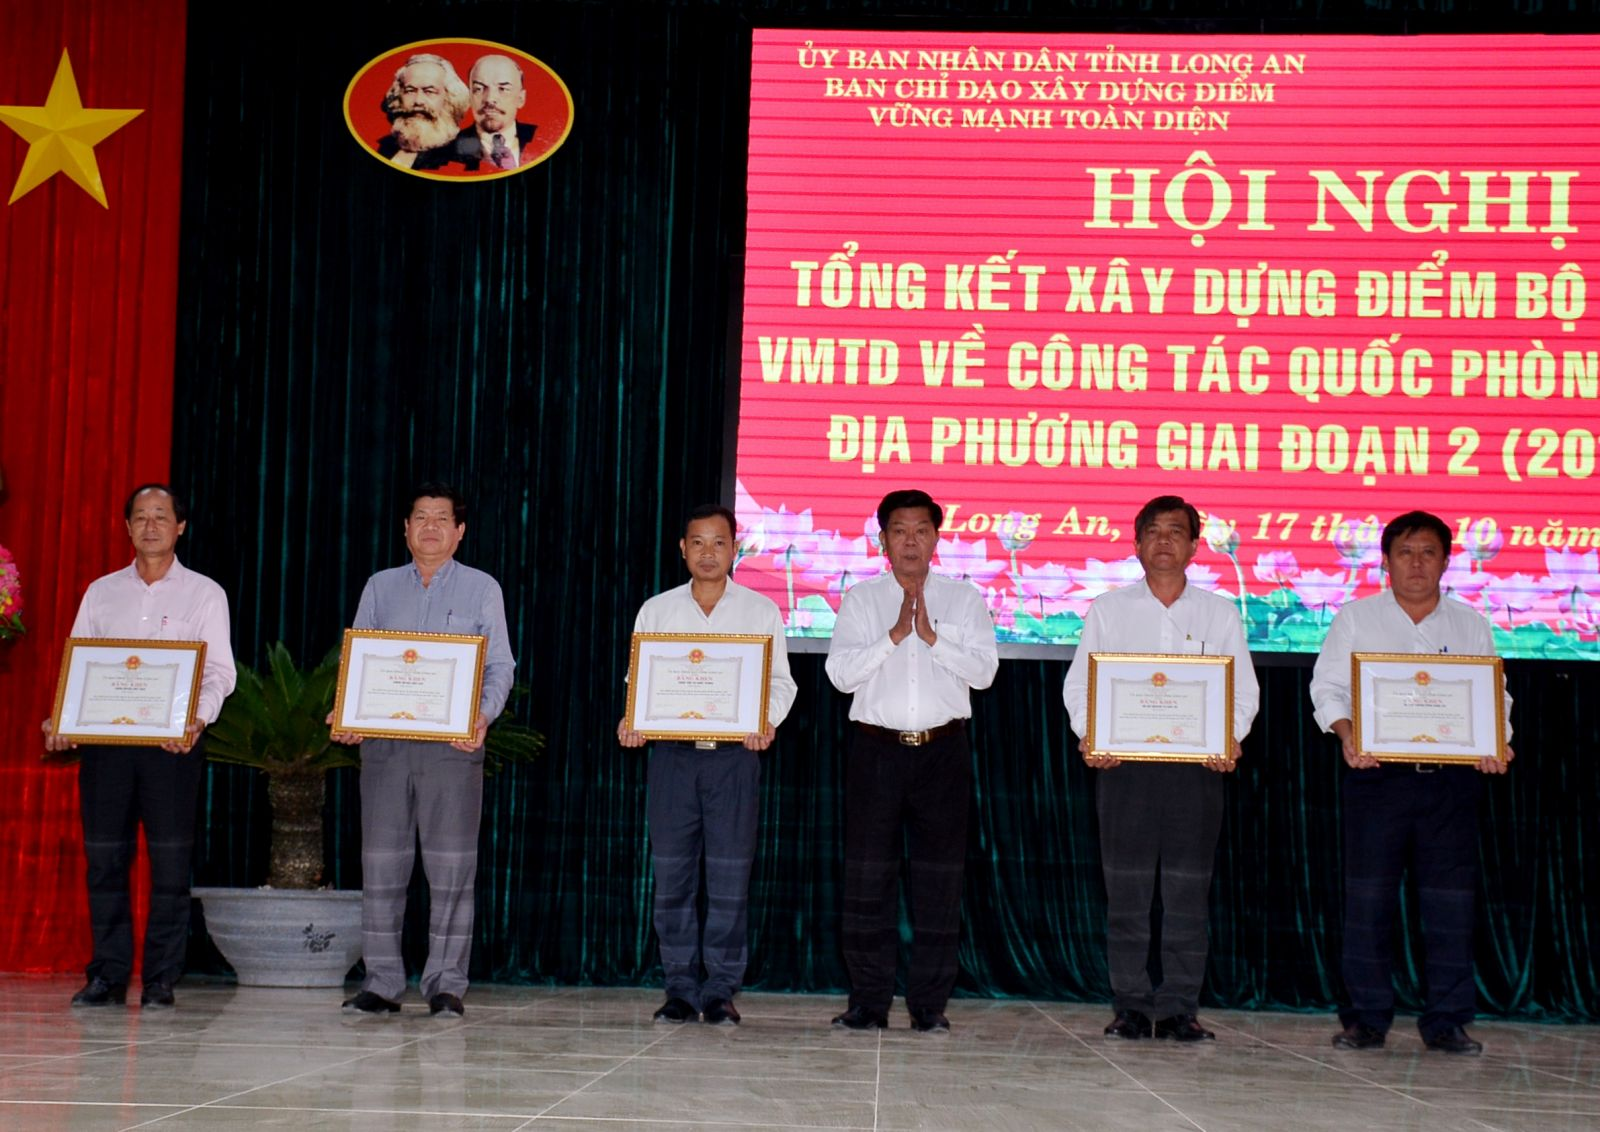 Chairman of the Provincial People's Committee - Tran Van Can awards certificates of merit to 15 collectives and individuals with outstanding achievements in building a typical model of comprehensive strong Military Command for local defense and military work.